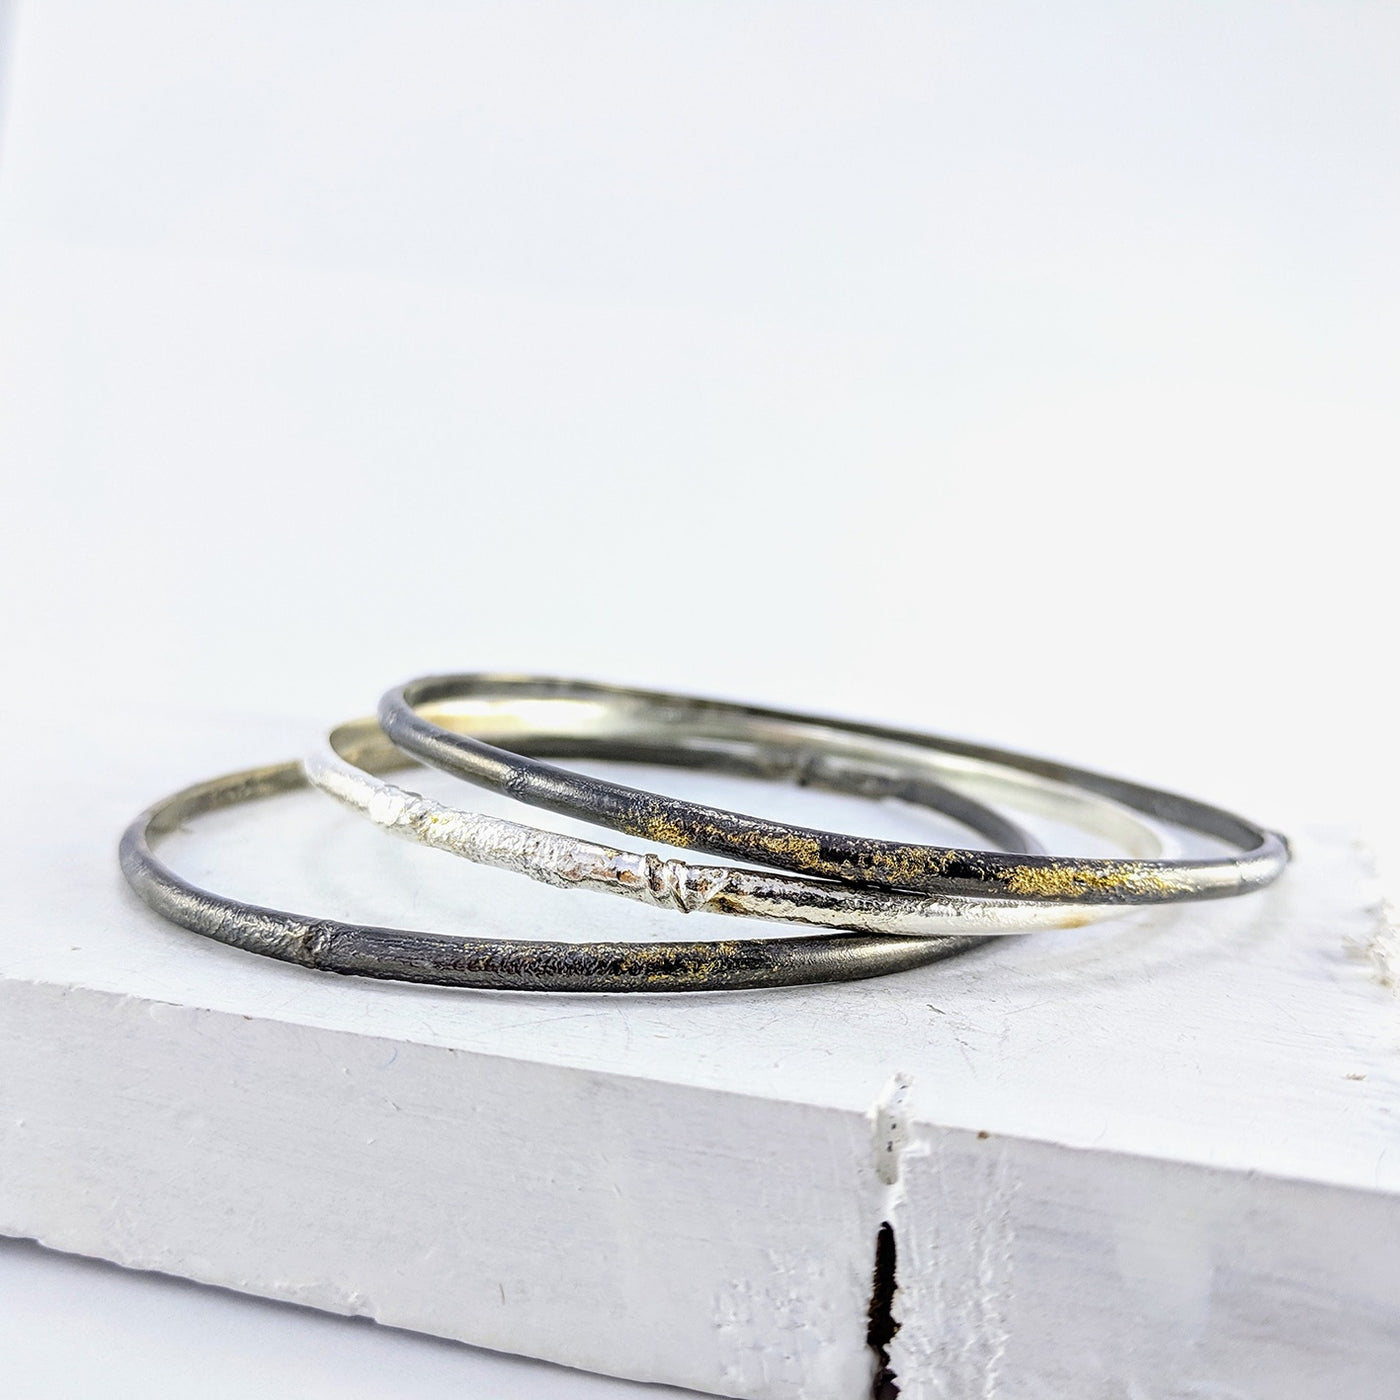 Glow Nook bangle - bright